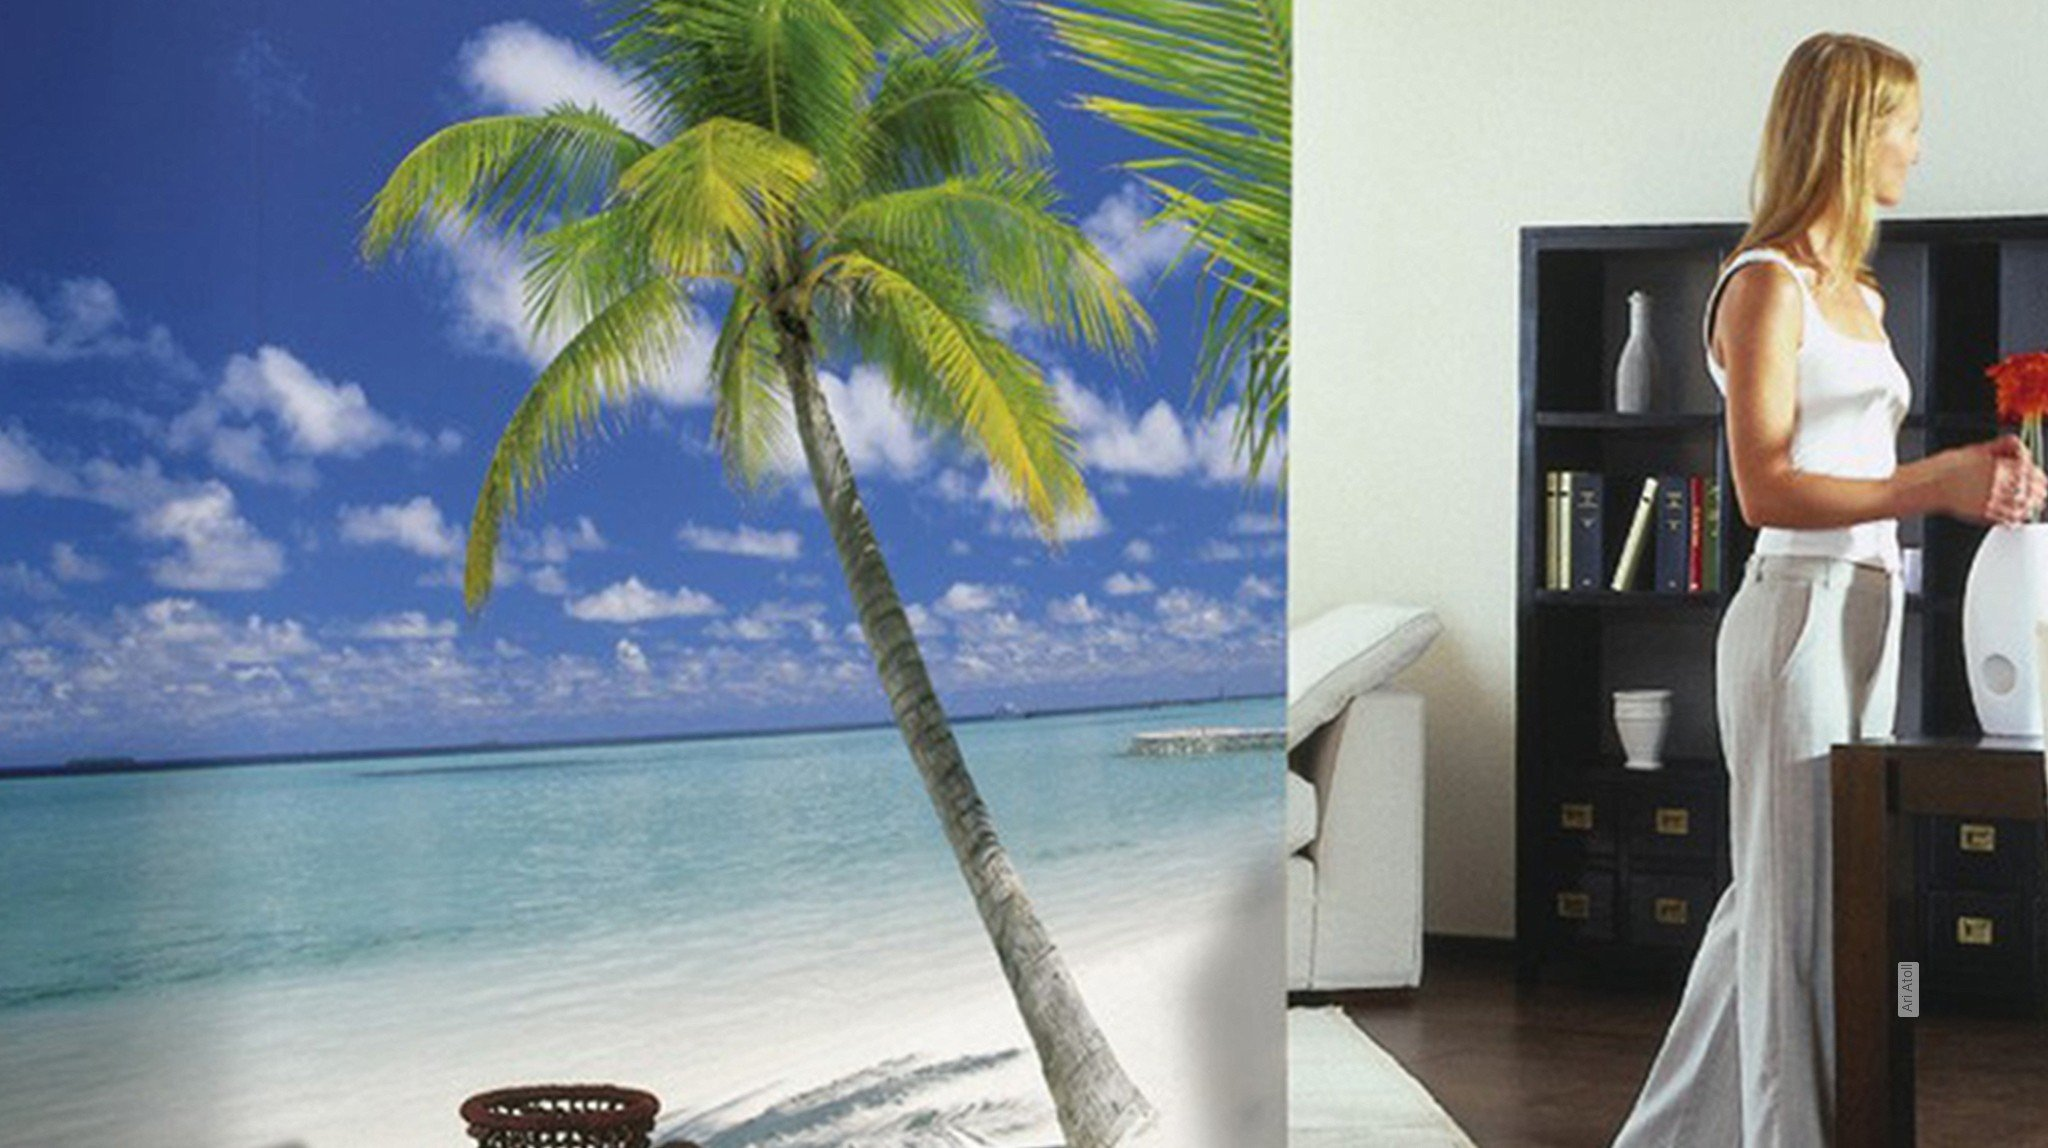 florale muster strand tapeten lust auf was neues. Black Bedroom Furniture Sets. Home Design Ideas